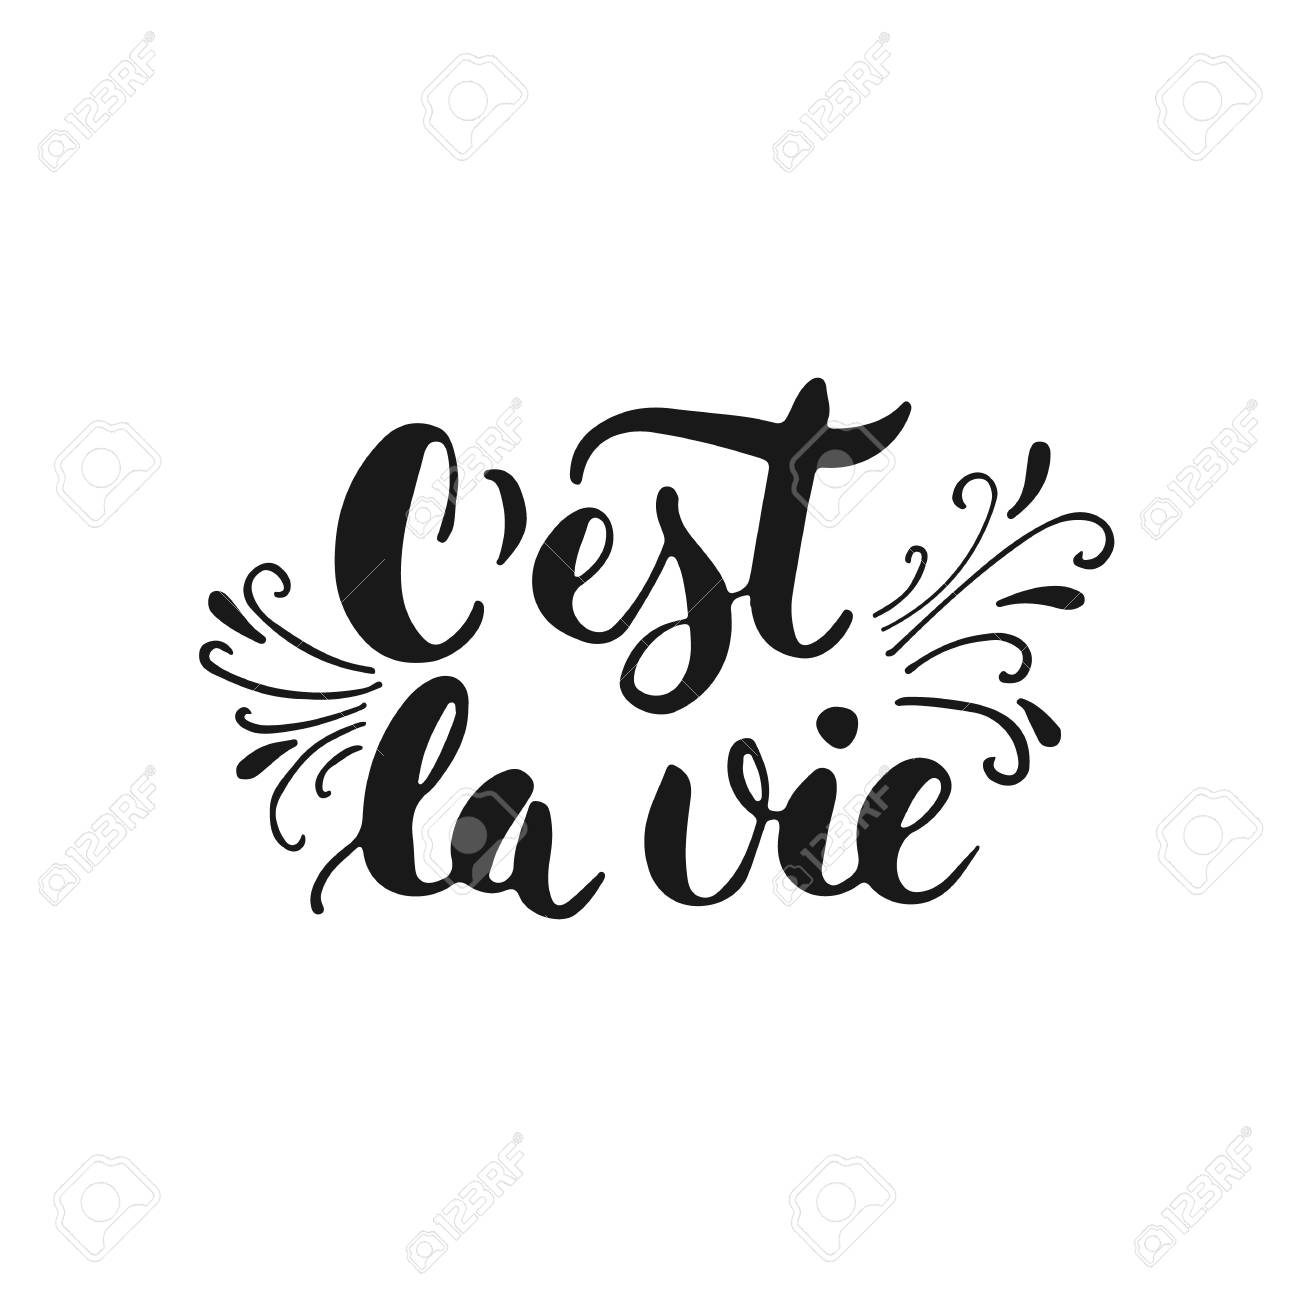 C'est La Vie - Hand Drawn Lettering Phrase That's Life In French ...